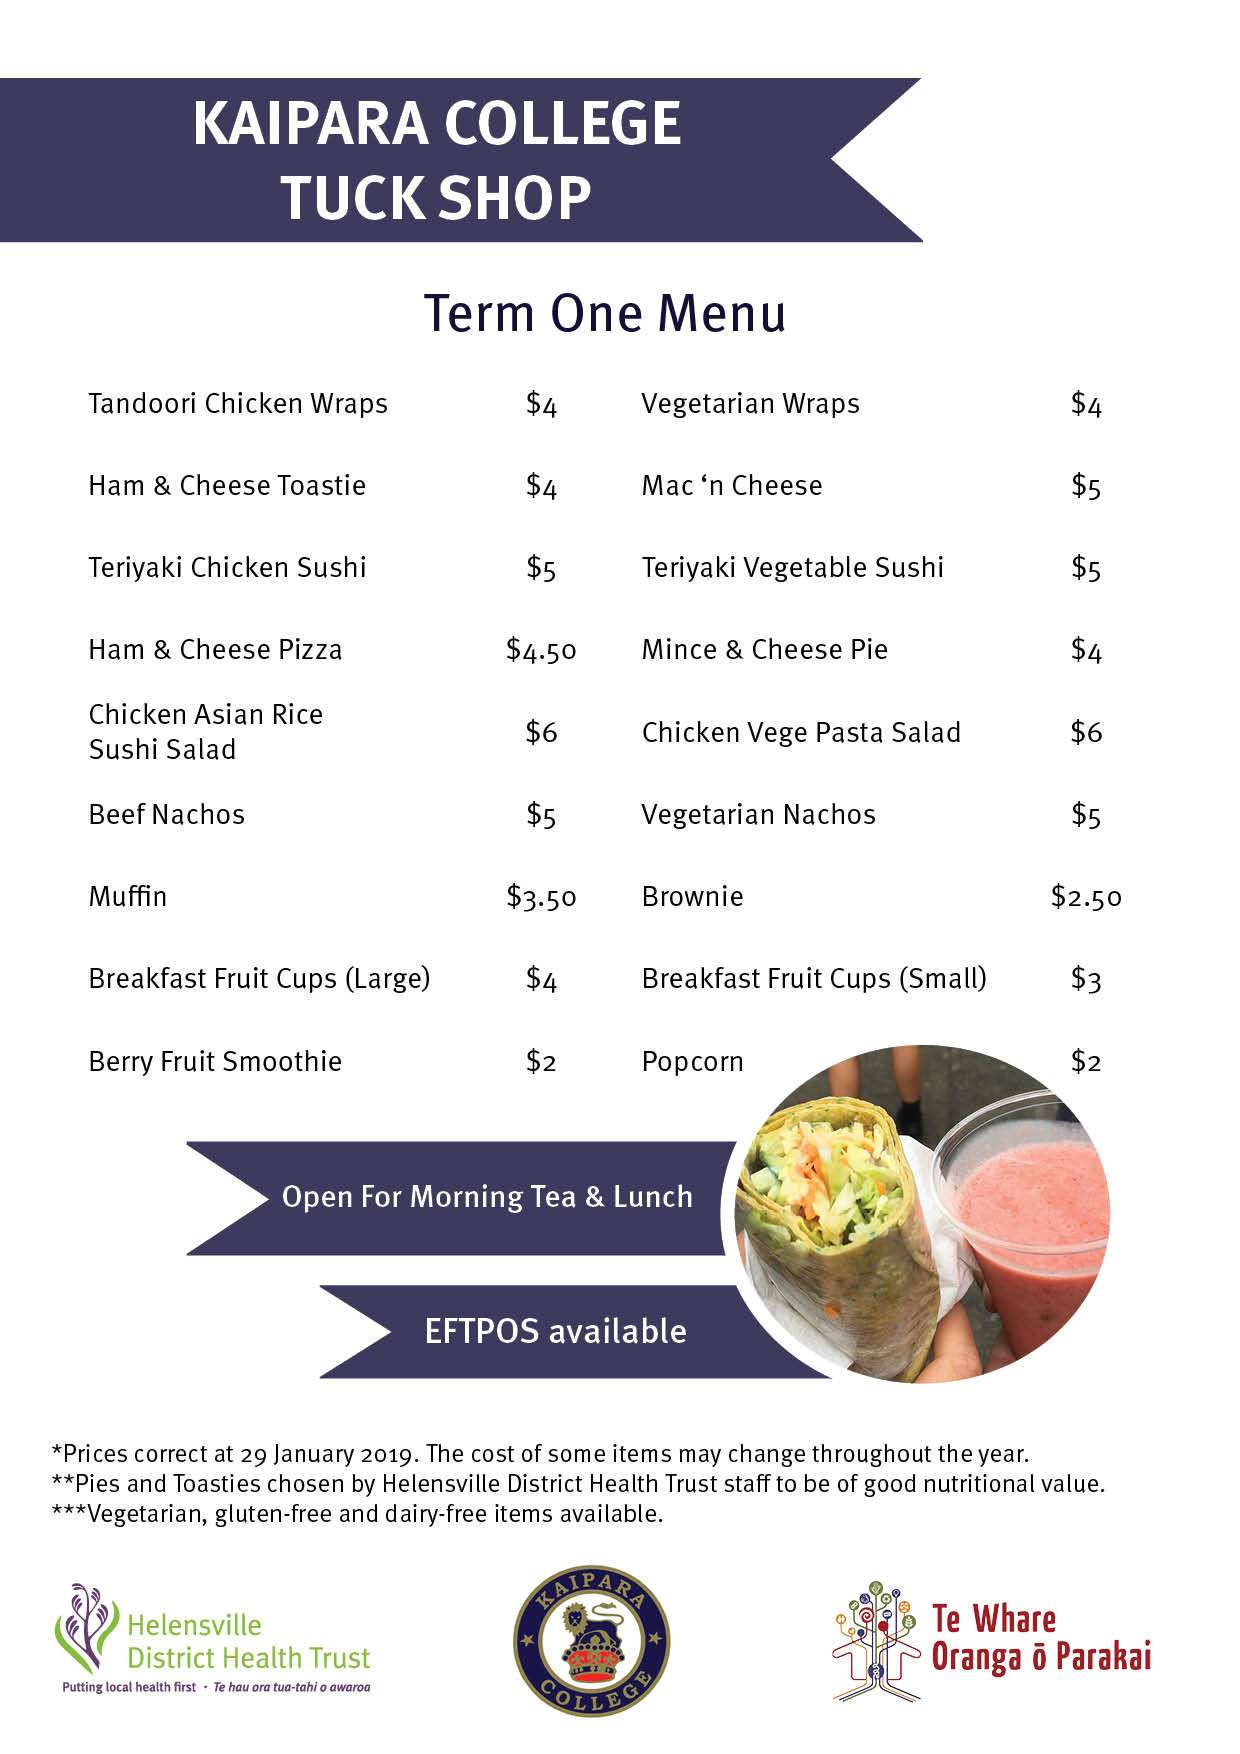 Twoop Kaipara College Tuck Shop Term 1 Menu 2